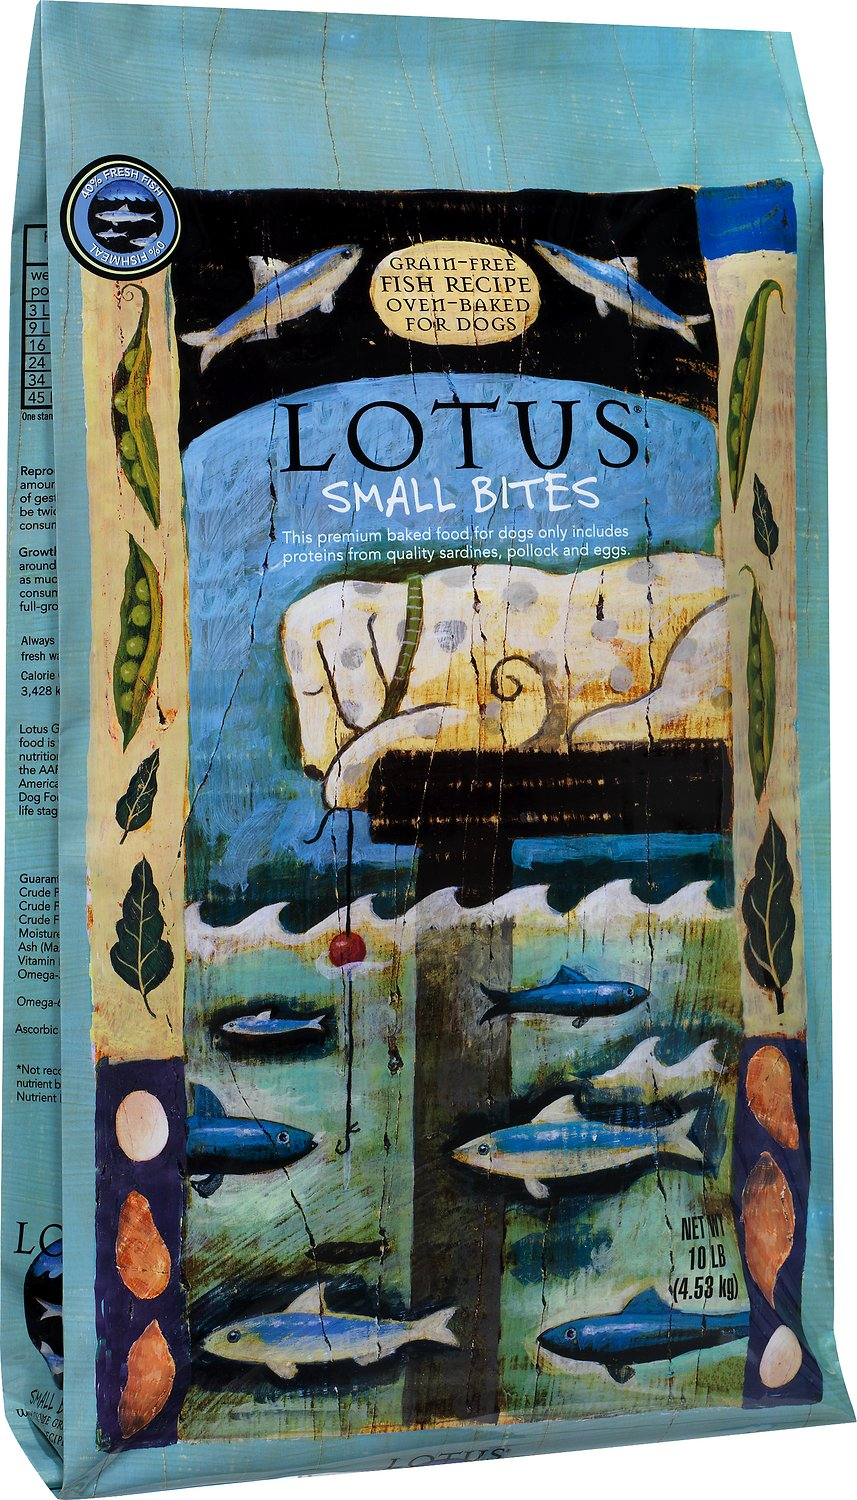 Lotus Oven-Baked Fish Small Bites Recipe Grain-Free Dry Dog Food, 10 ...